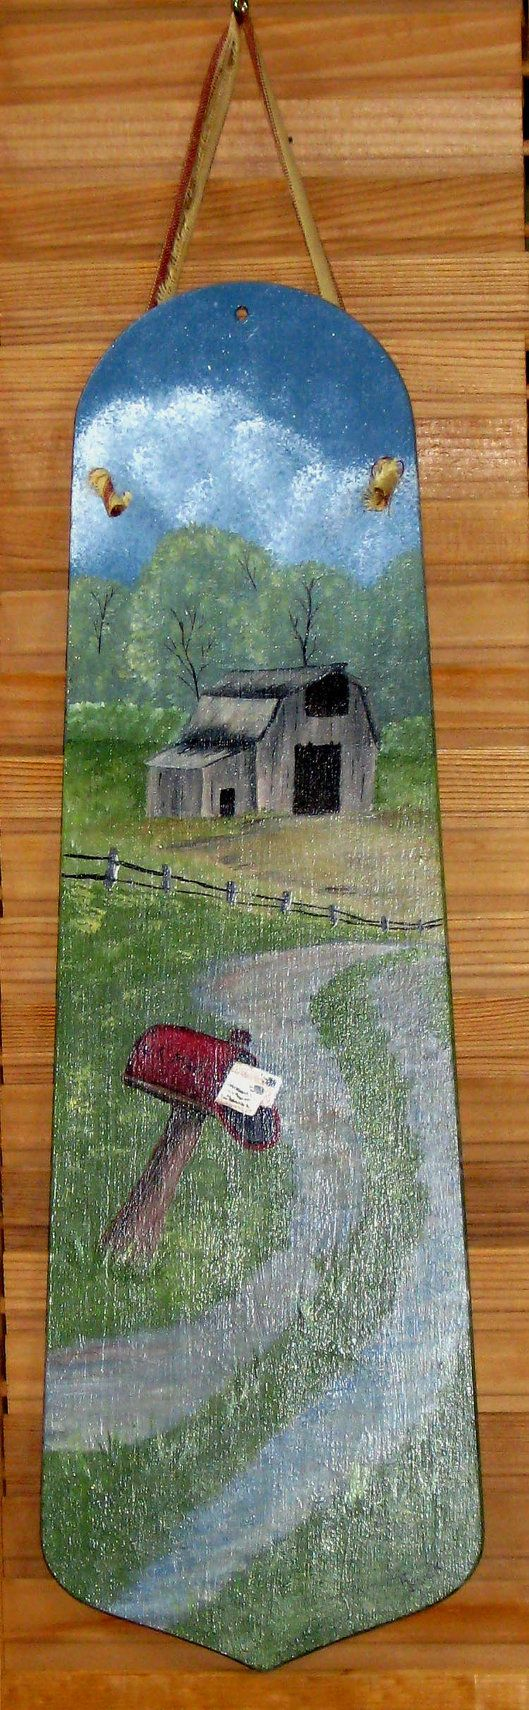 Barn Mailbox Handpainted Fan Blade by KathysKountry on Etsy